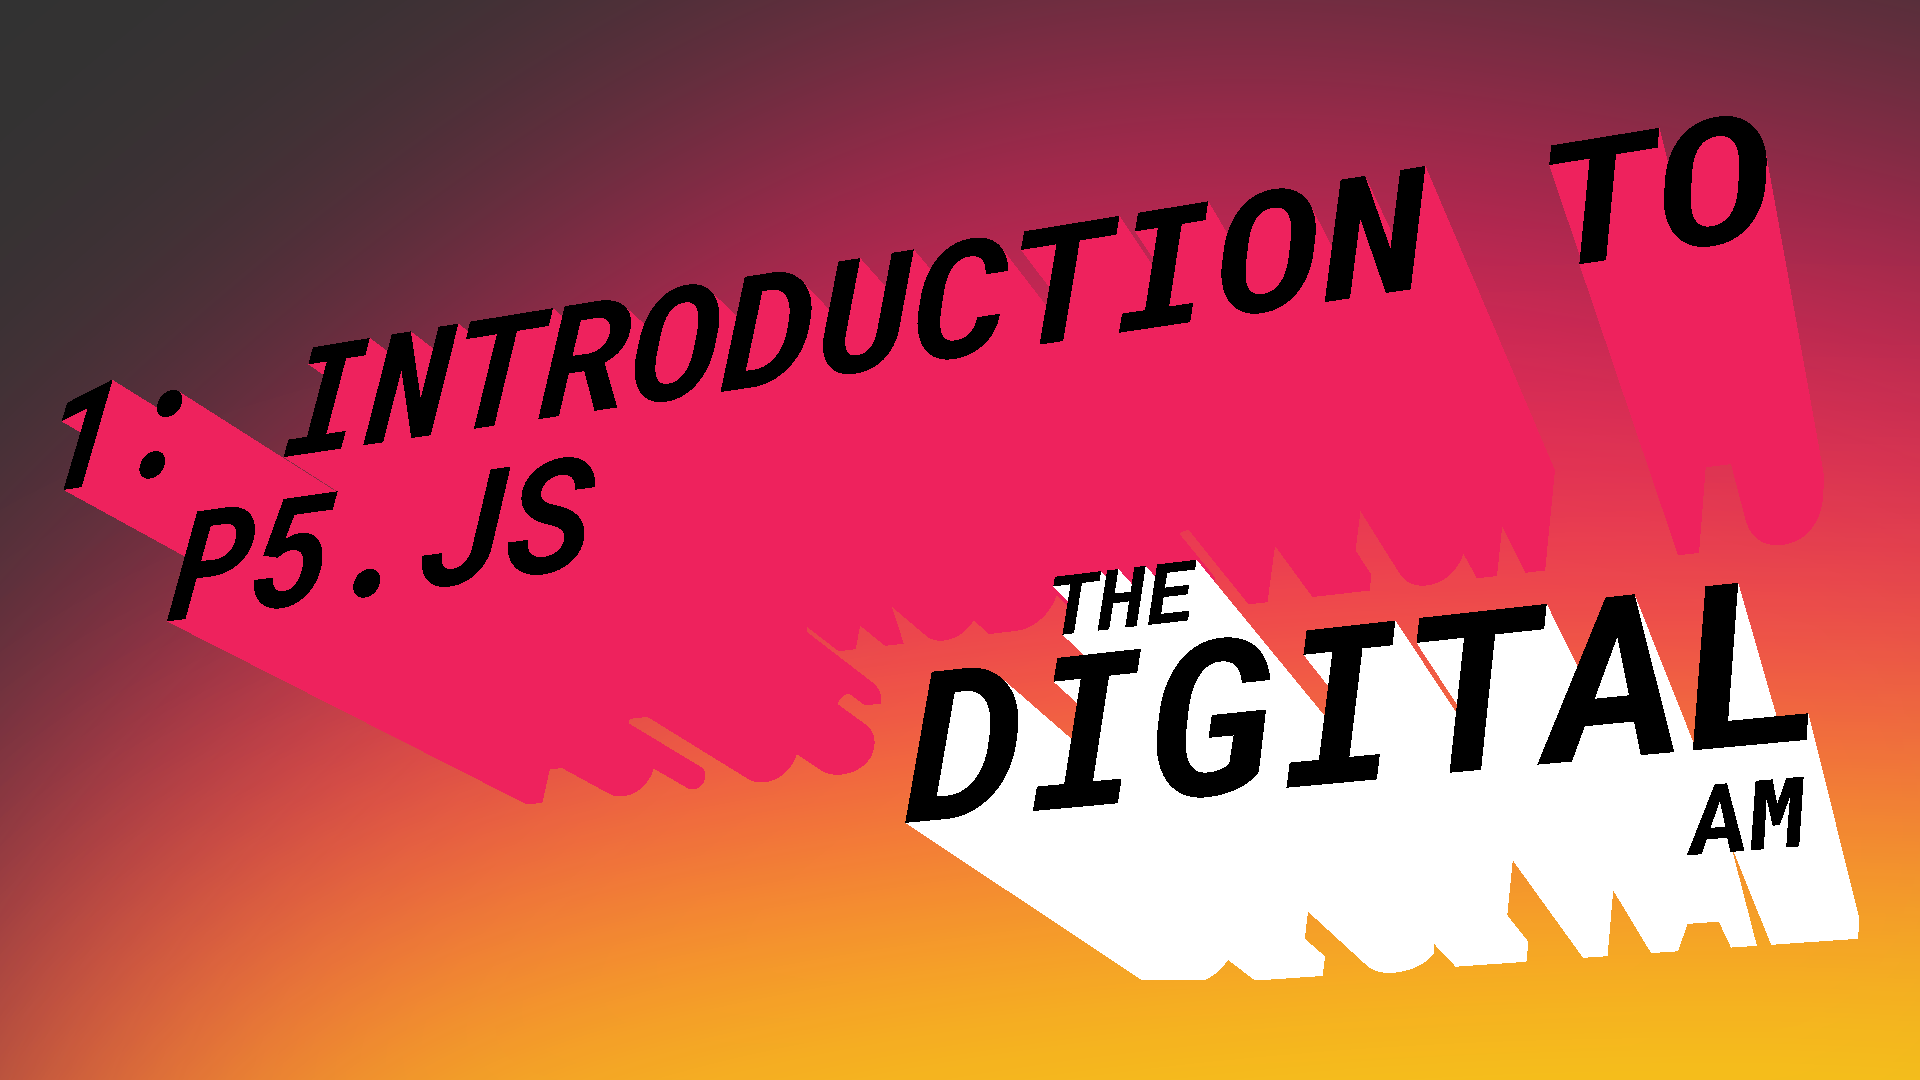 Introduction to p5.js